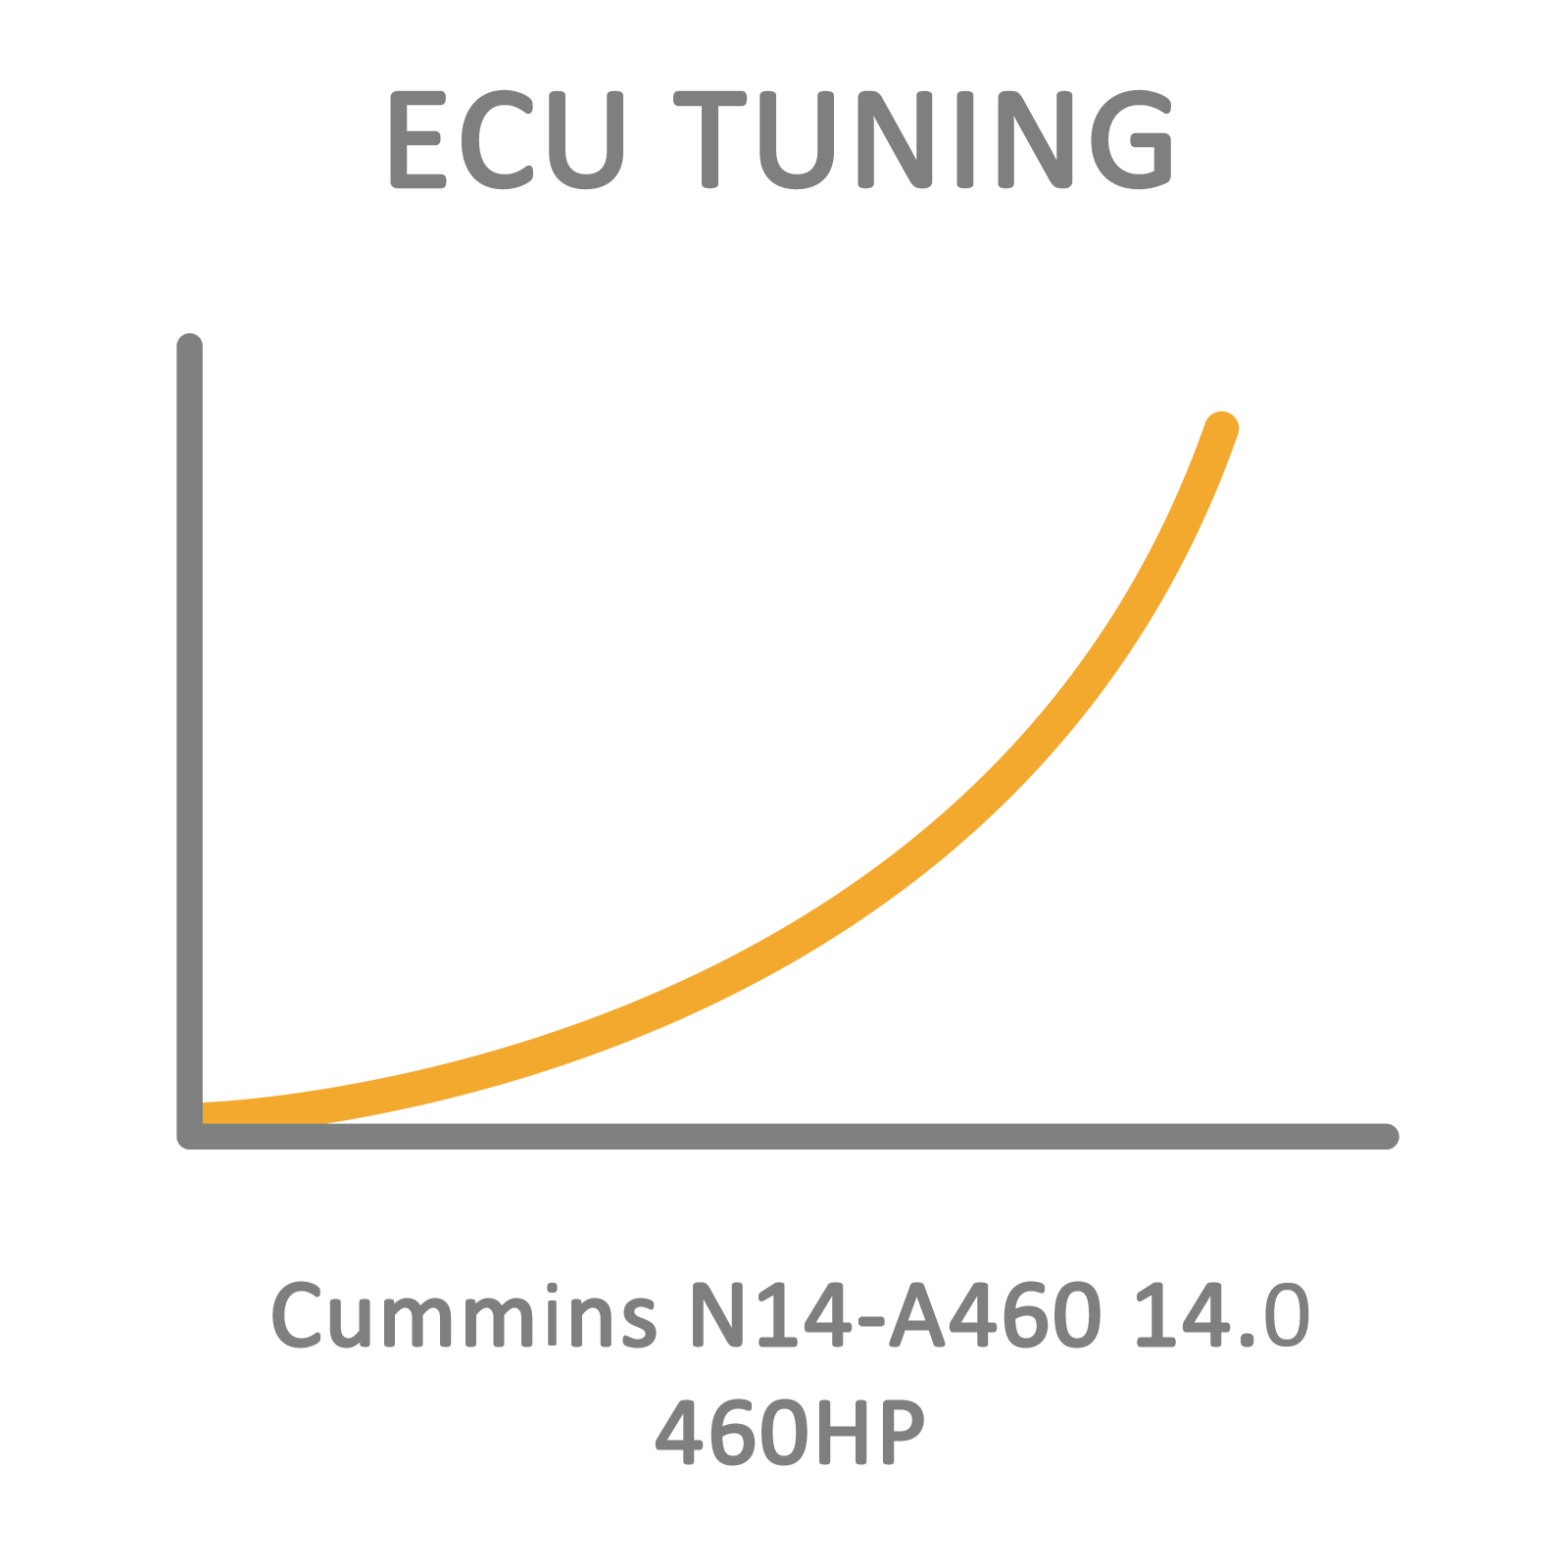 Cummins N14-A460 14.0 460HP ECU Tuning Remapping Programming